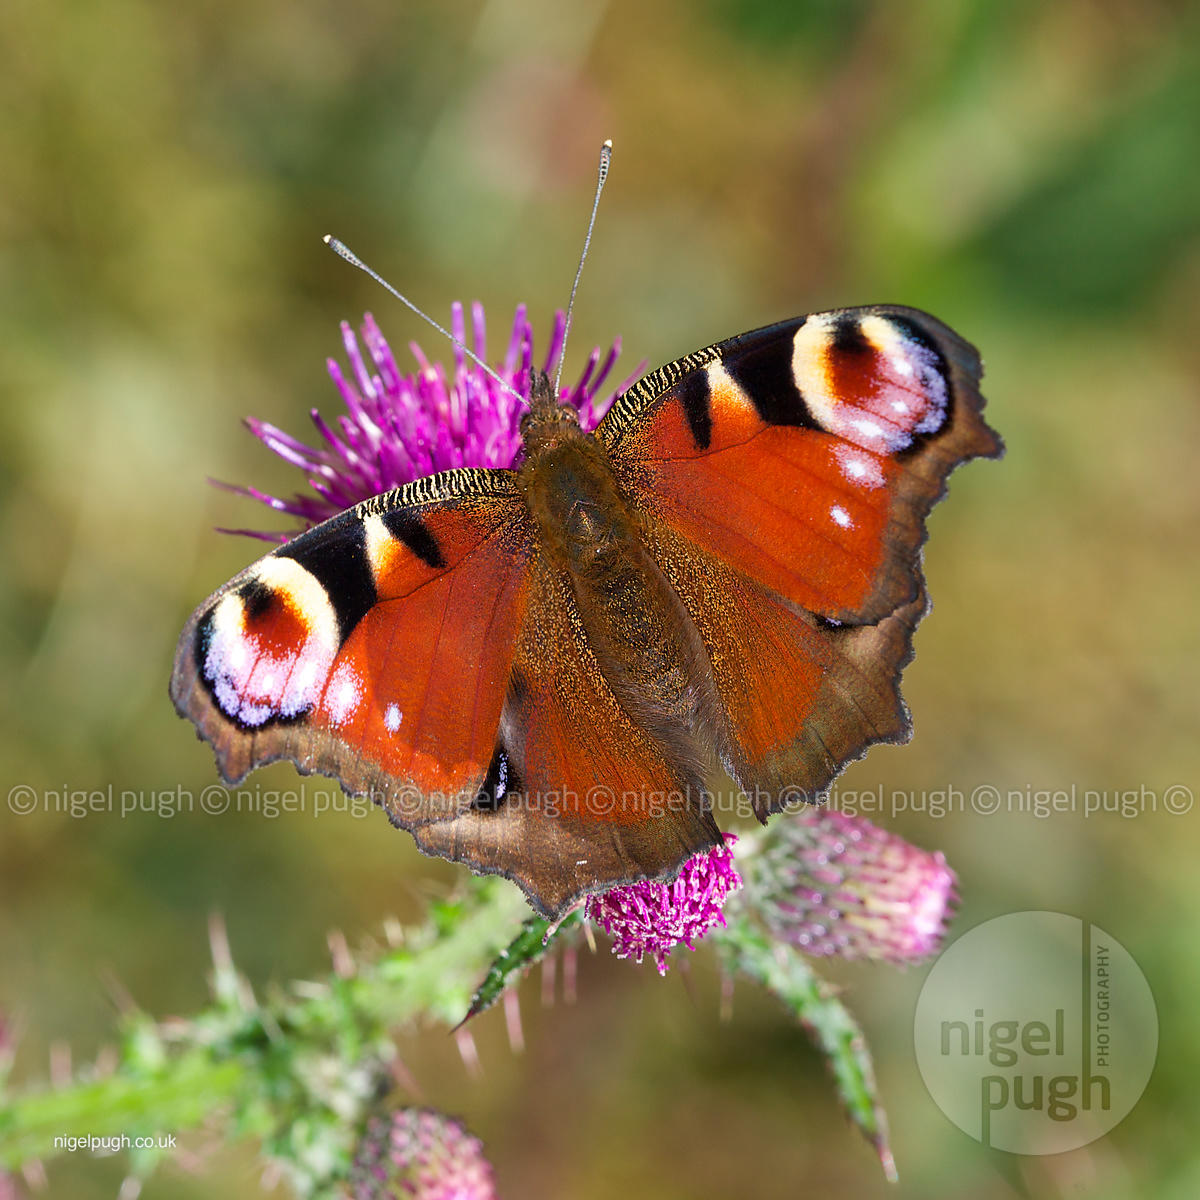 shaggy peacock butterfly: